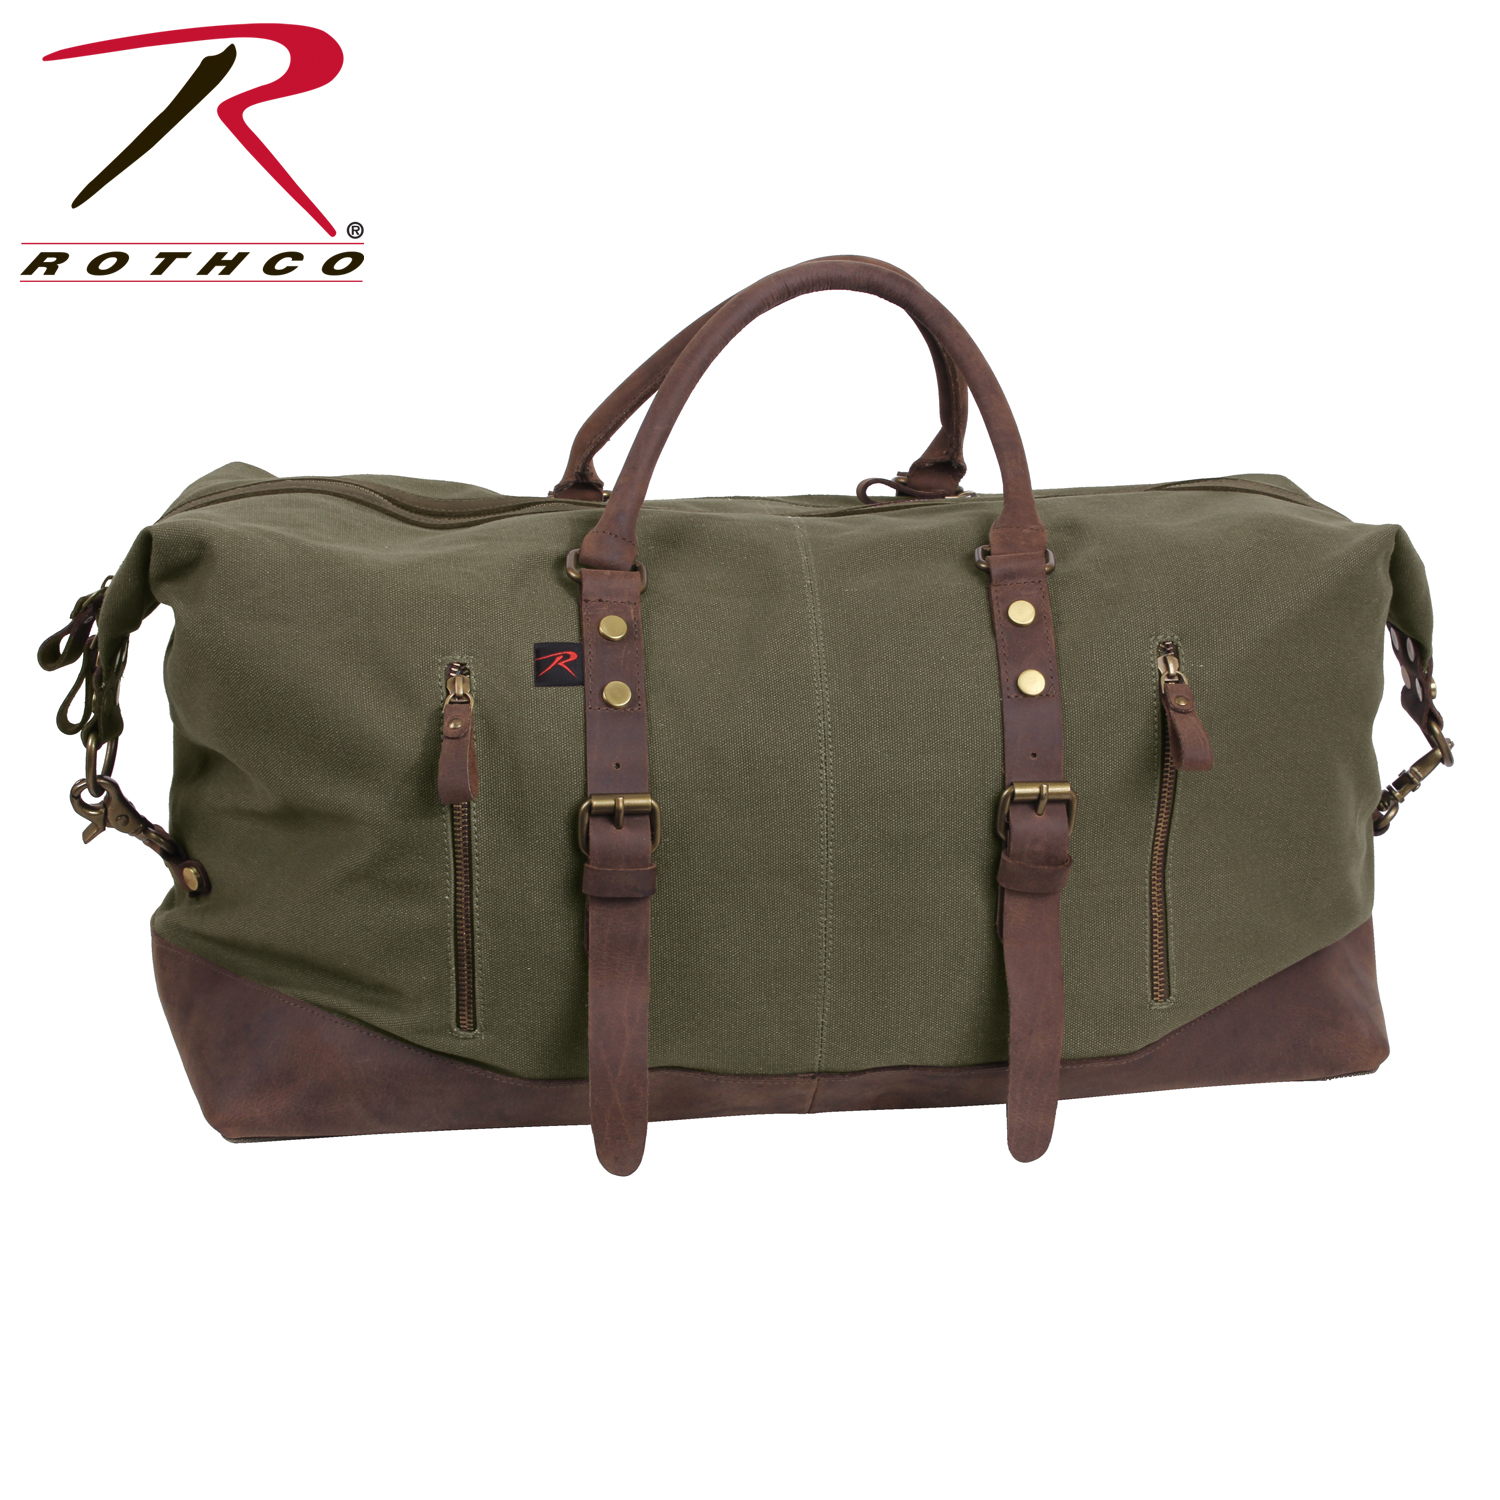 1b89f10367 Rothco Deluxe Long Weekend Bag